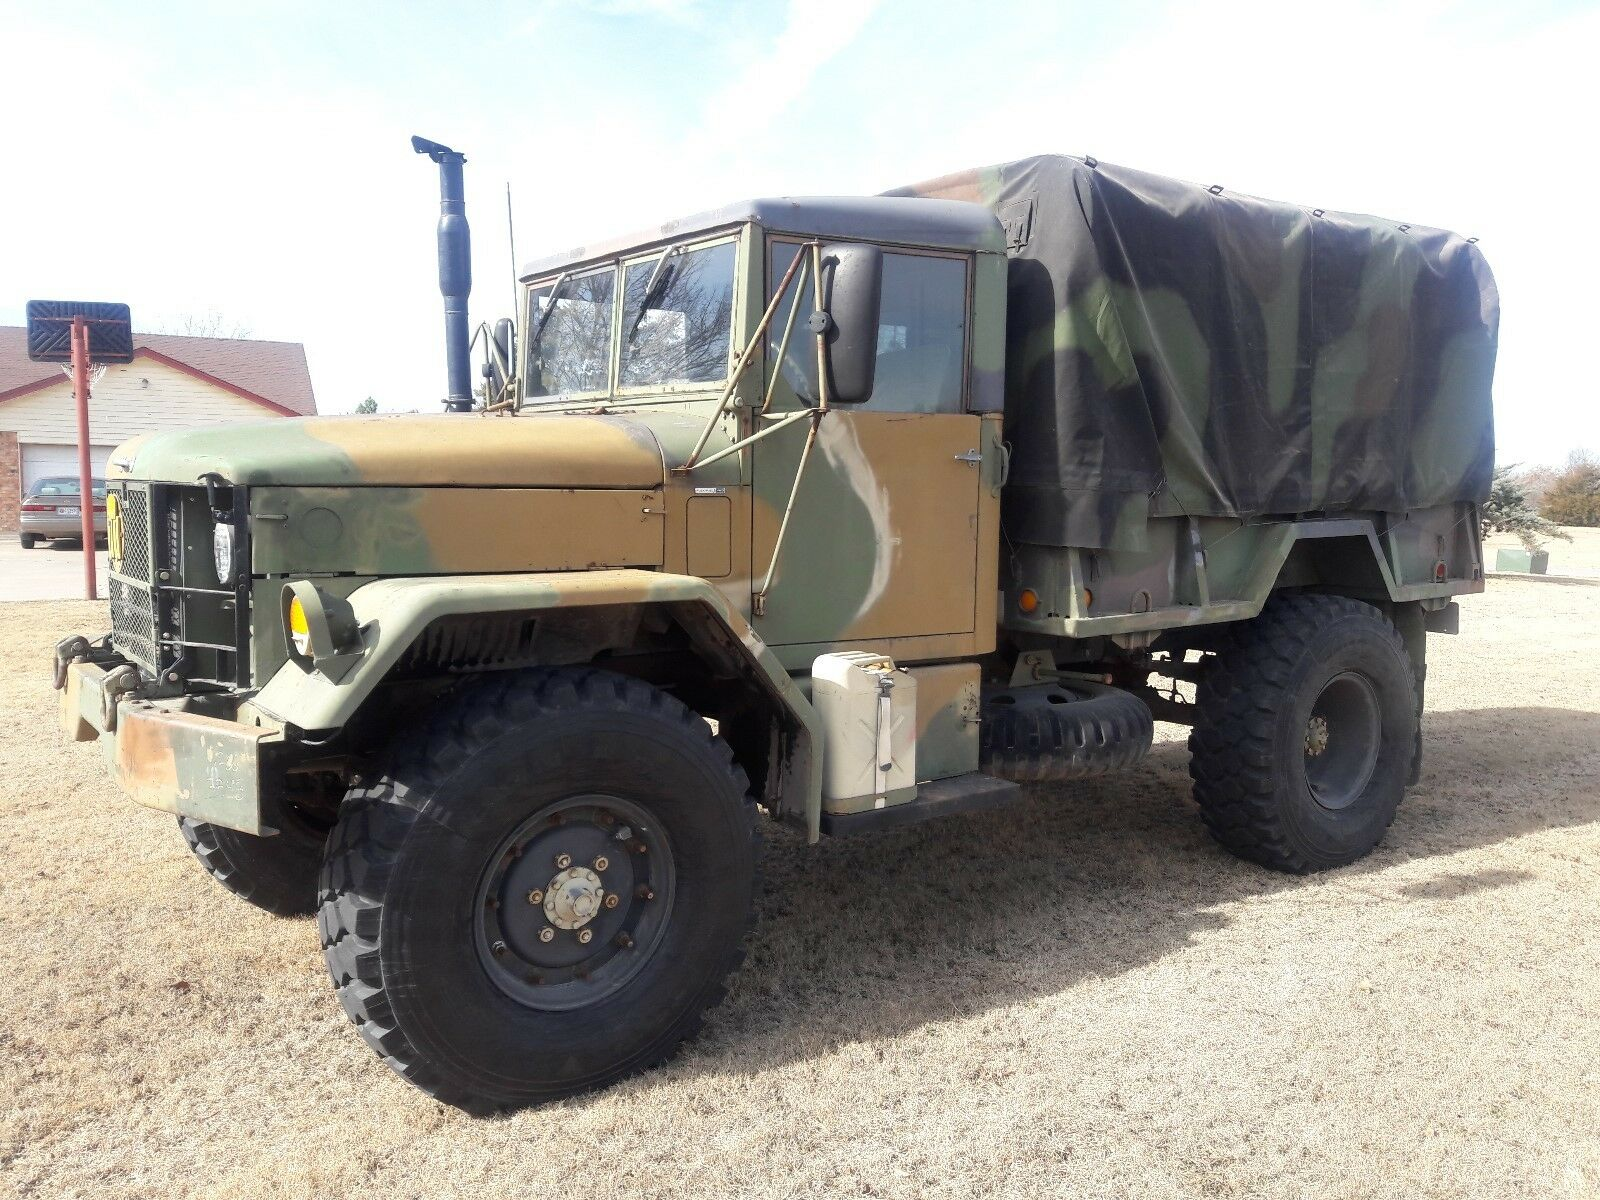 Nissan Of Lawton >> 1971 Am General M35a2 Bobbed 2 1/2 Ton Military Truck - Used Am General for sale in Lawton, Oklahoma